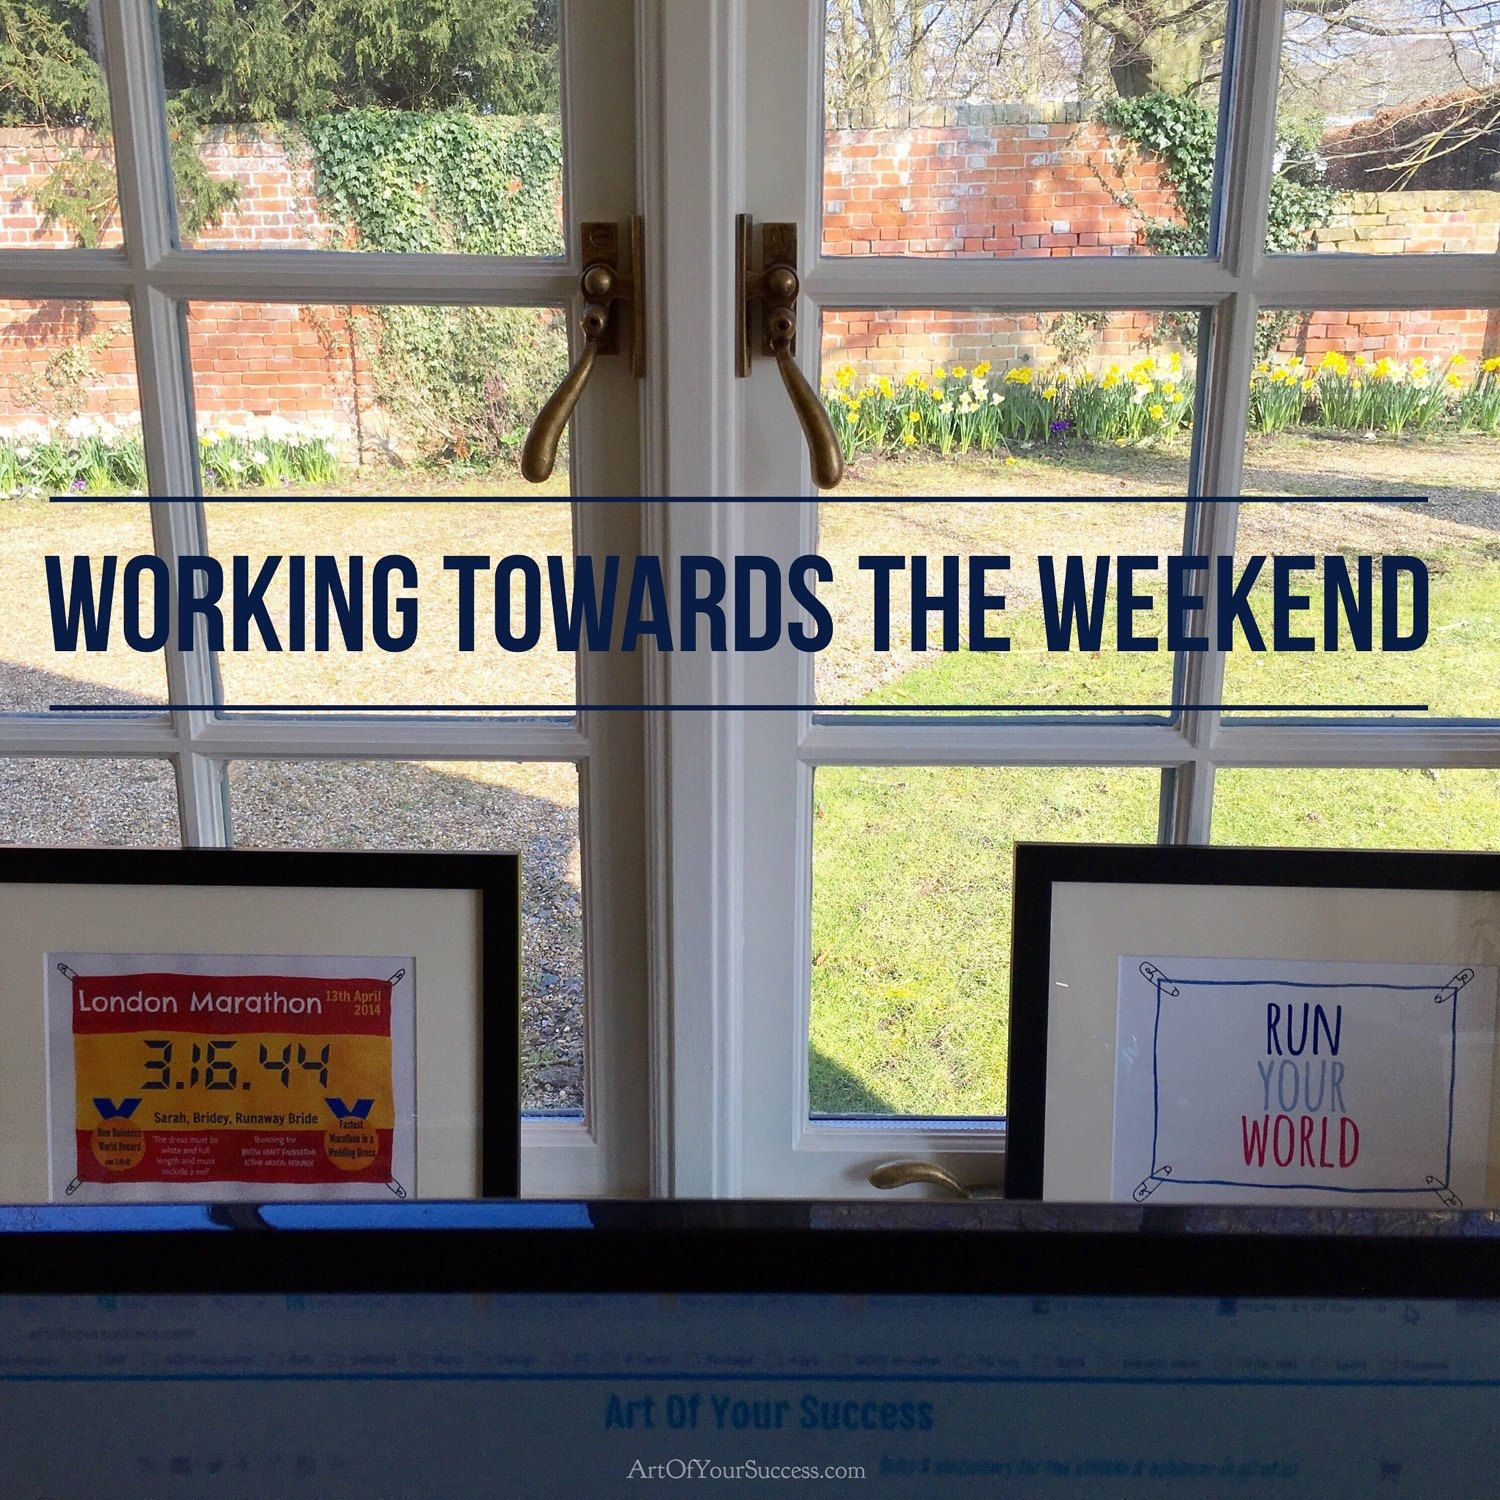 The weekend is calling. Inspiring view from my desk. Have you got some great training / adventures planned? You can see a couple of my inspirational quote & marathon prints here, keeping my motivation up! #marathon #giftsforrunners #motivationprint #wallart